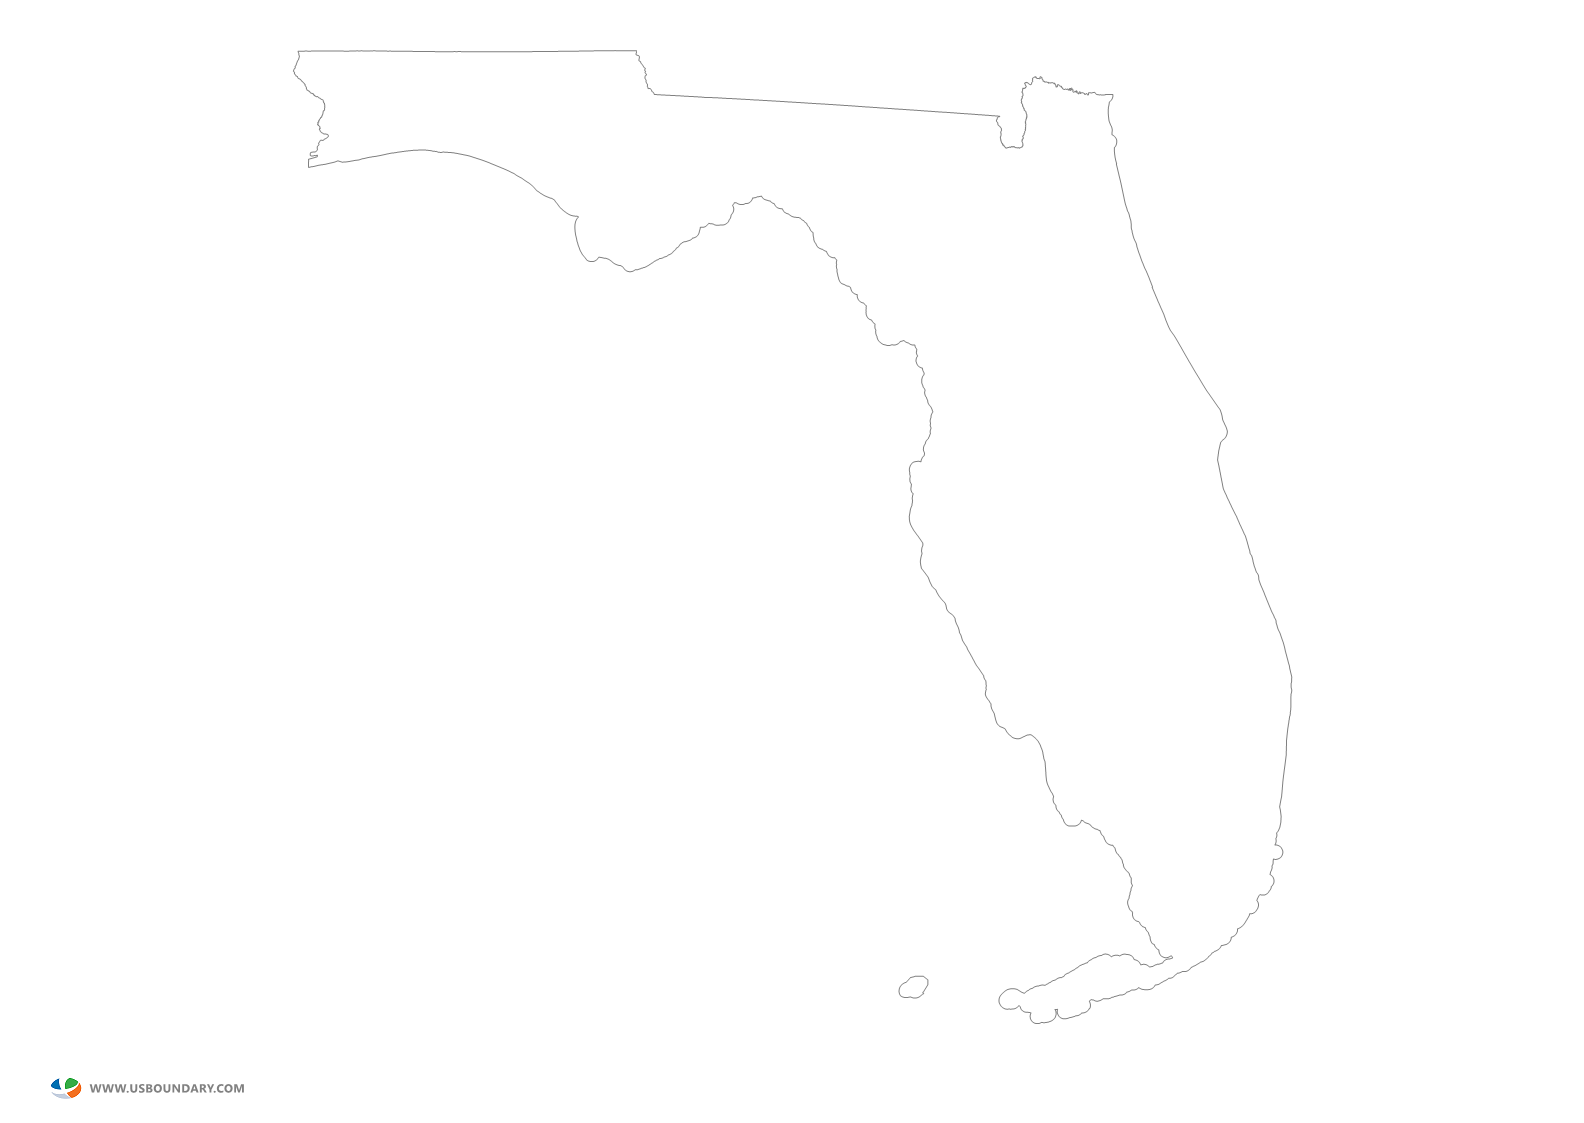 Florida state outline png. Maps download map